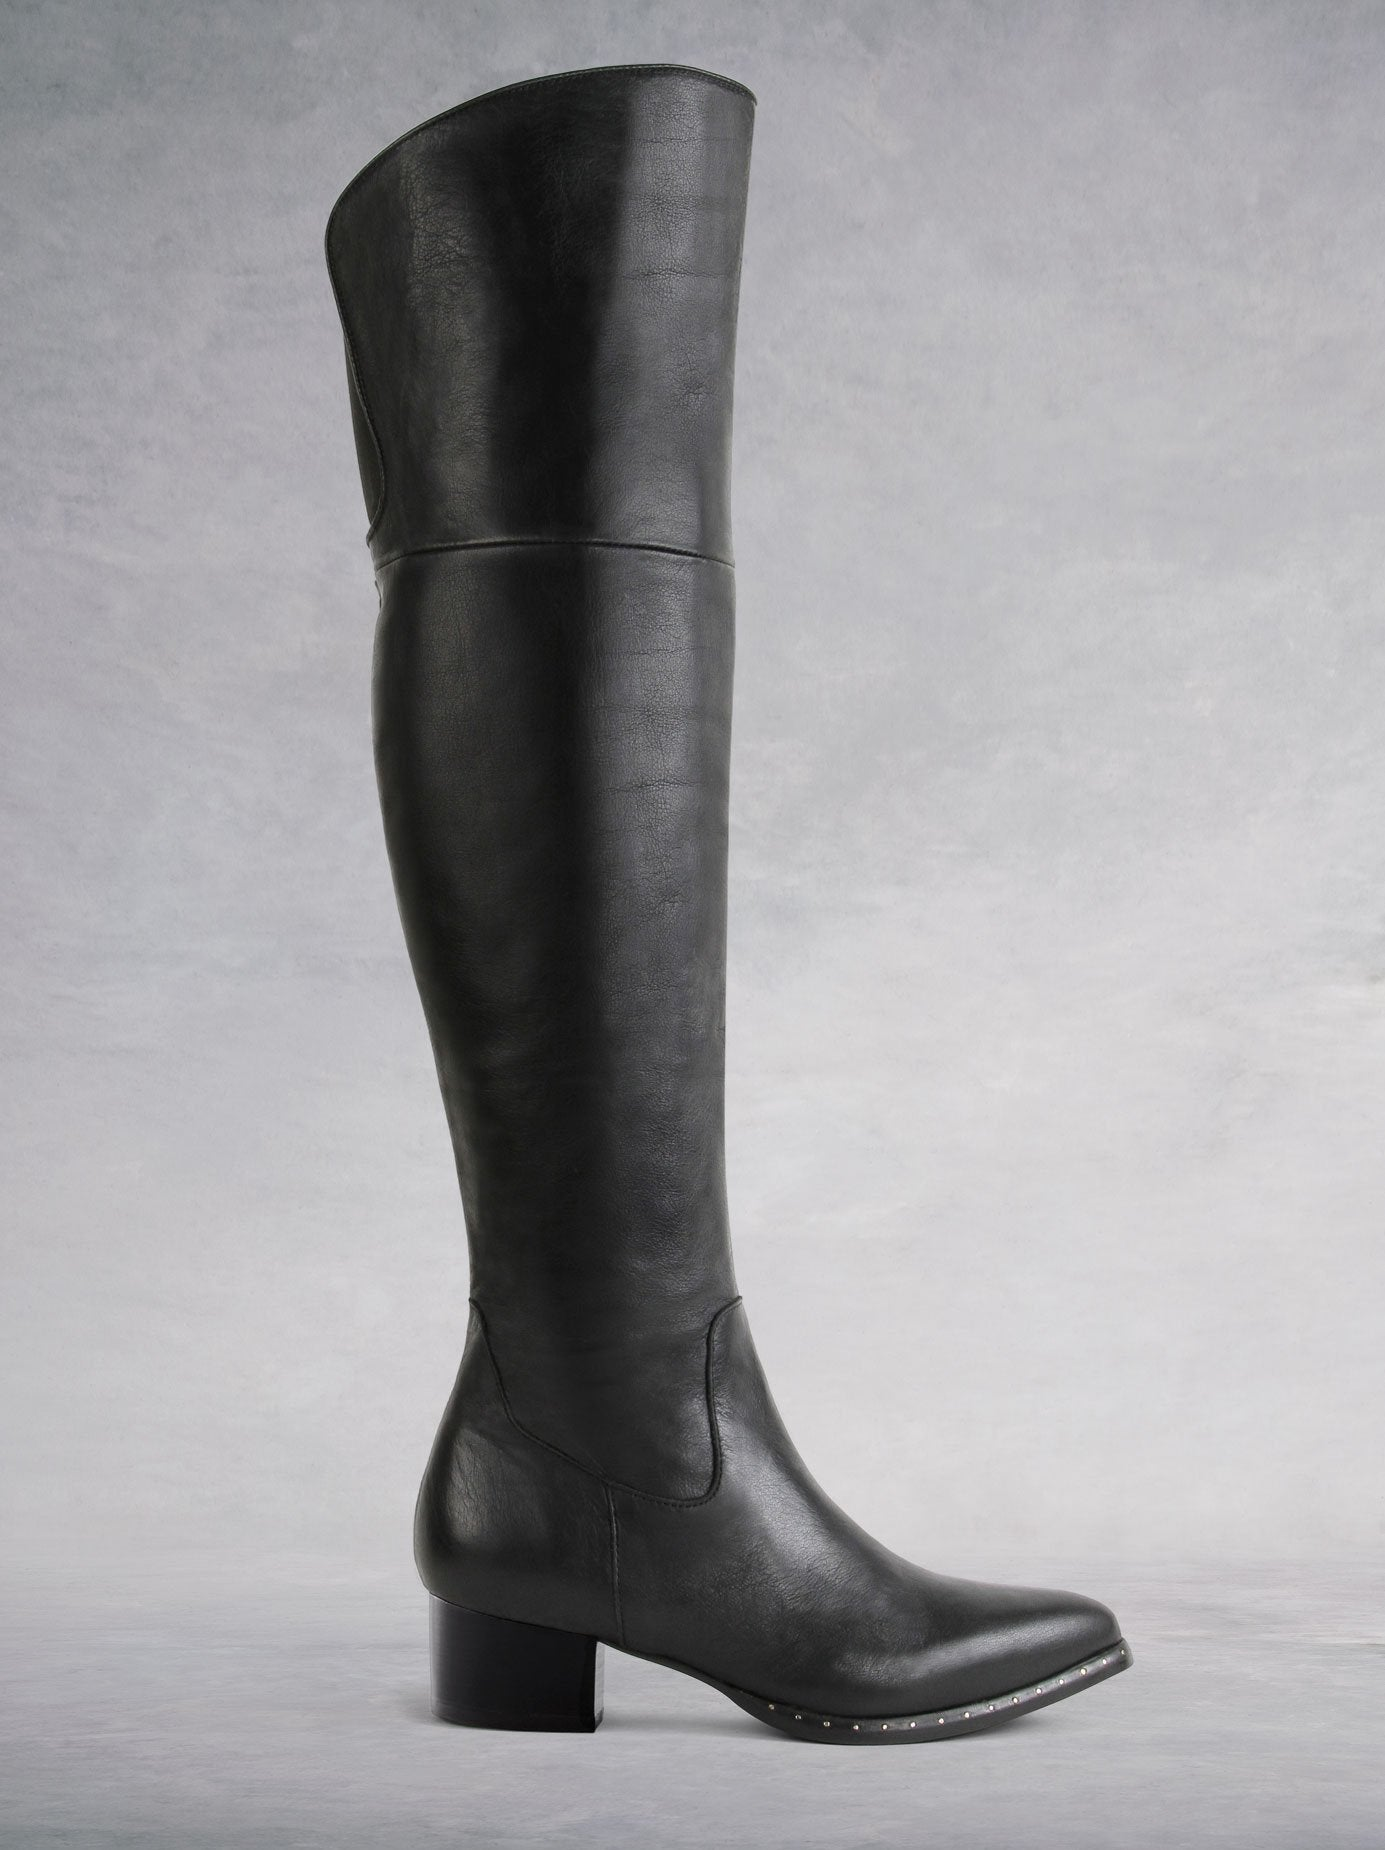 Blade Black Leather - Pointed toe over-the-knee boots - web exclusive.